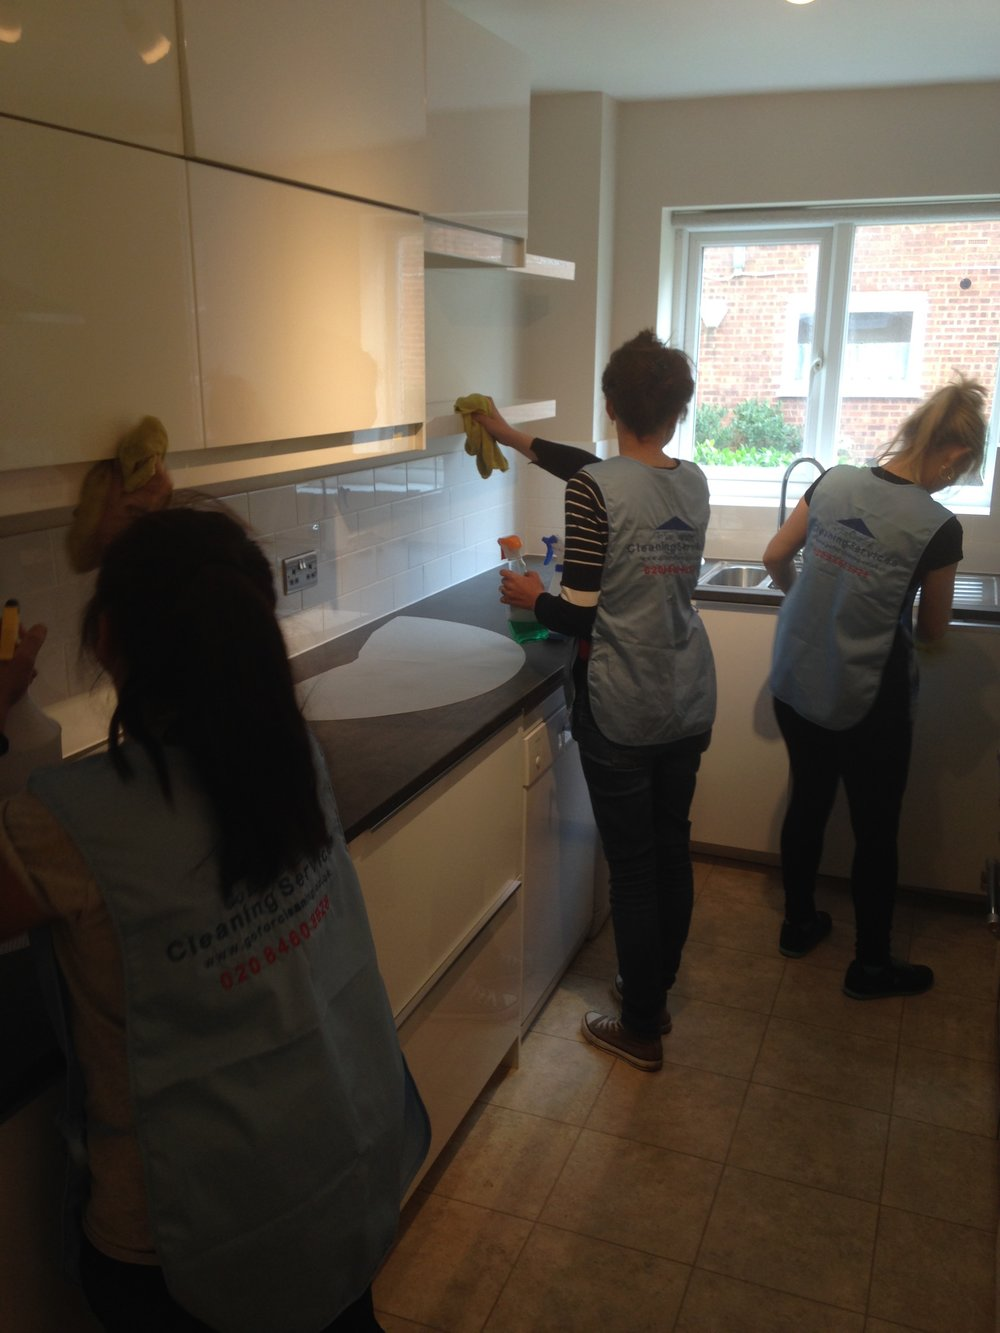 Team of cleaners in kitchen SW20.jpg